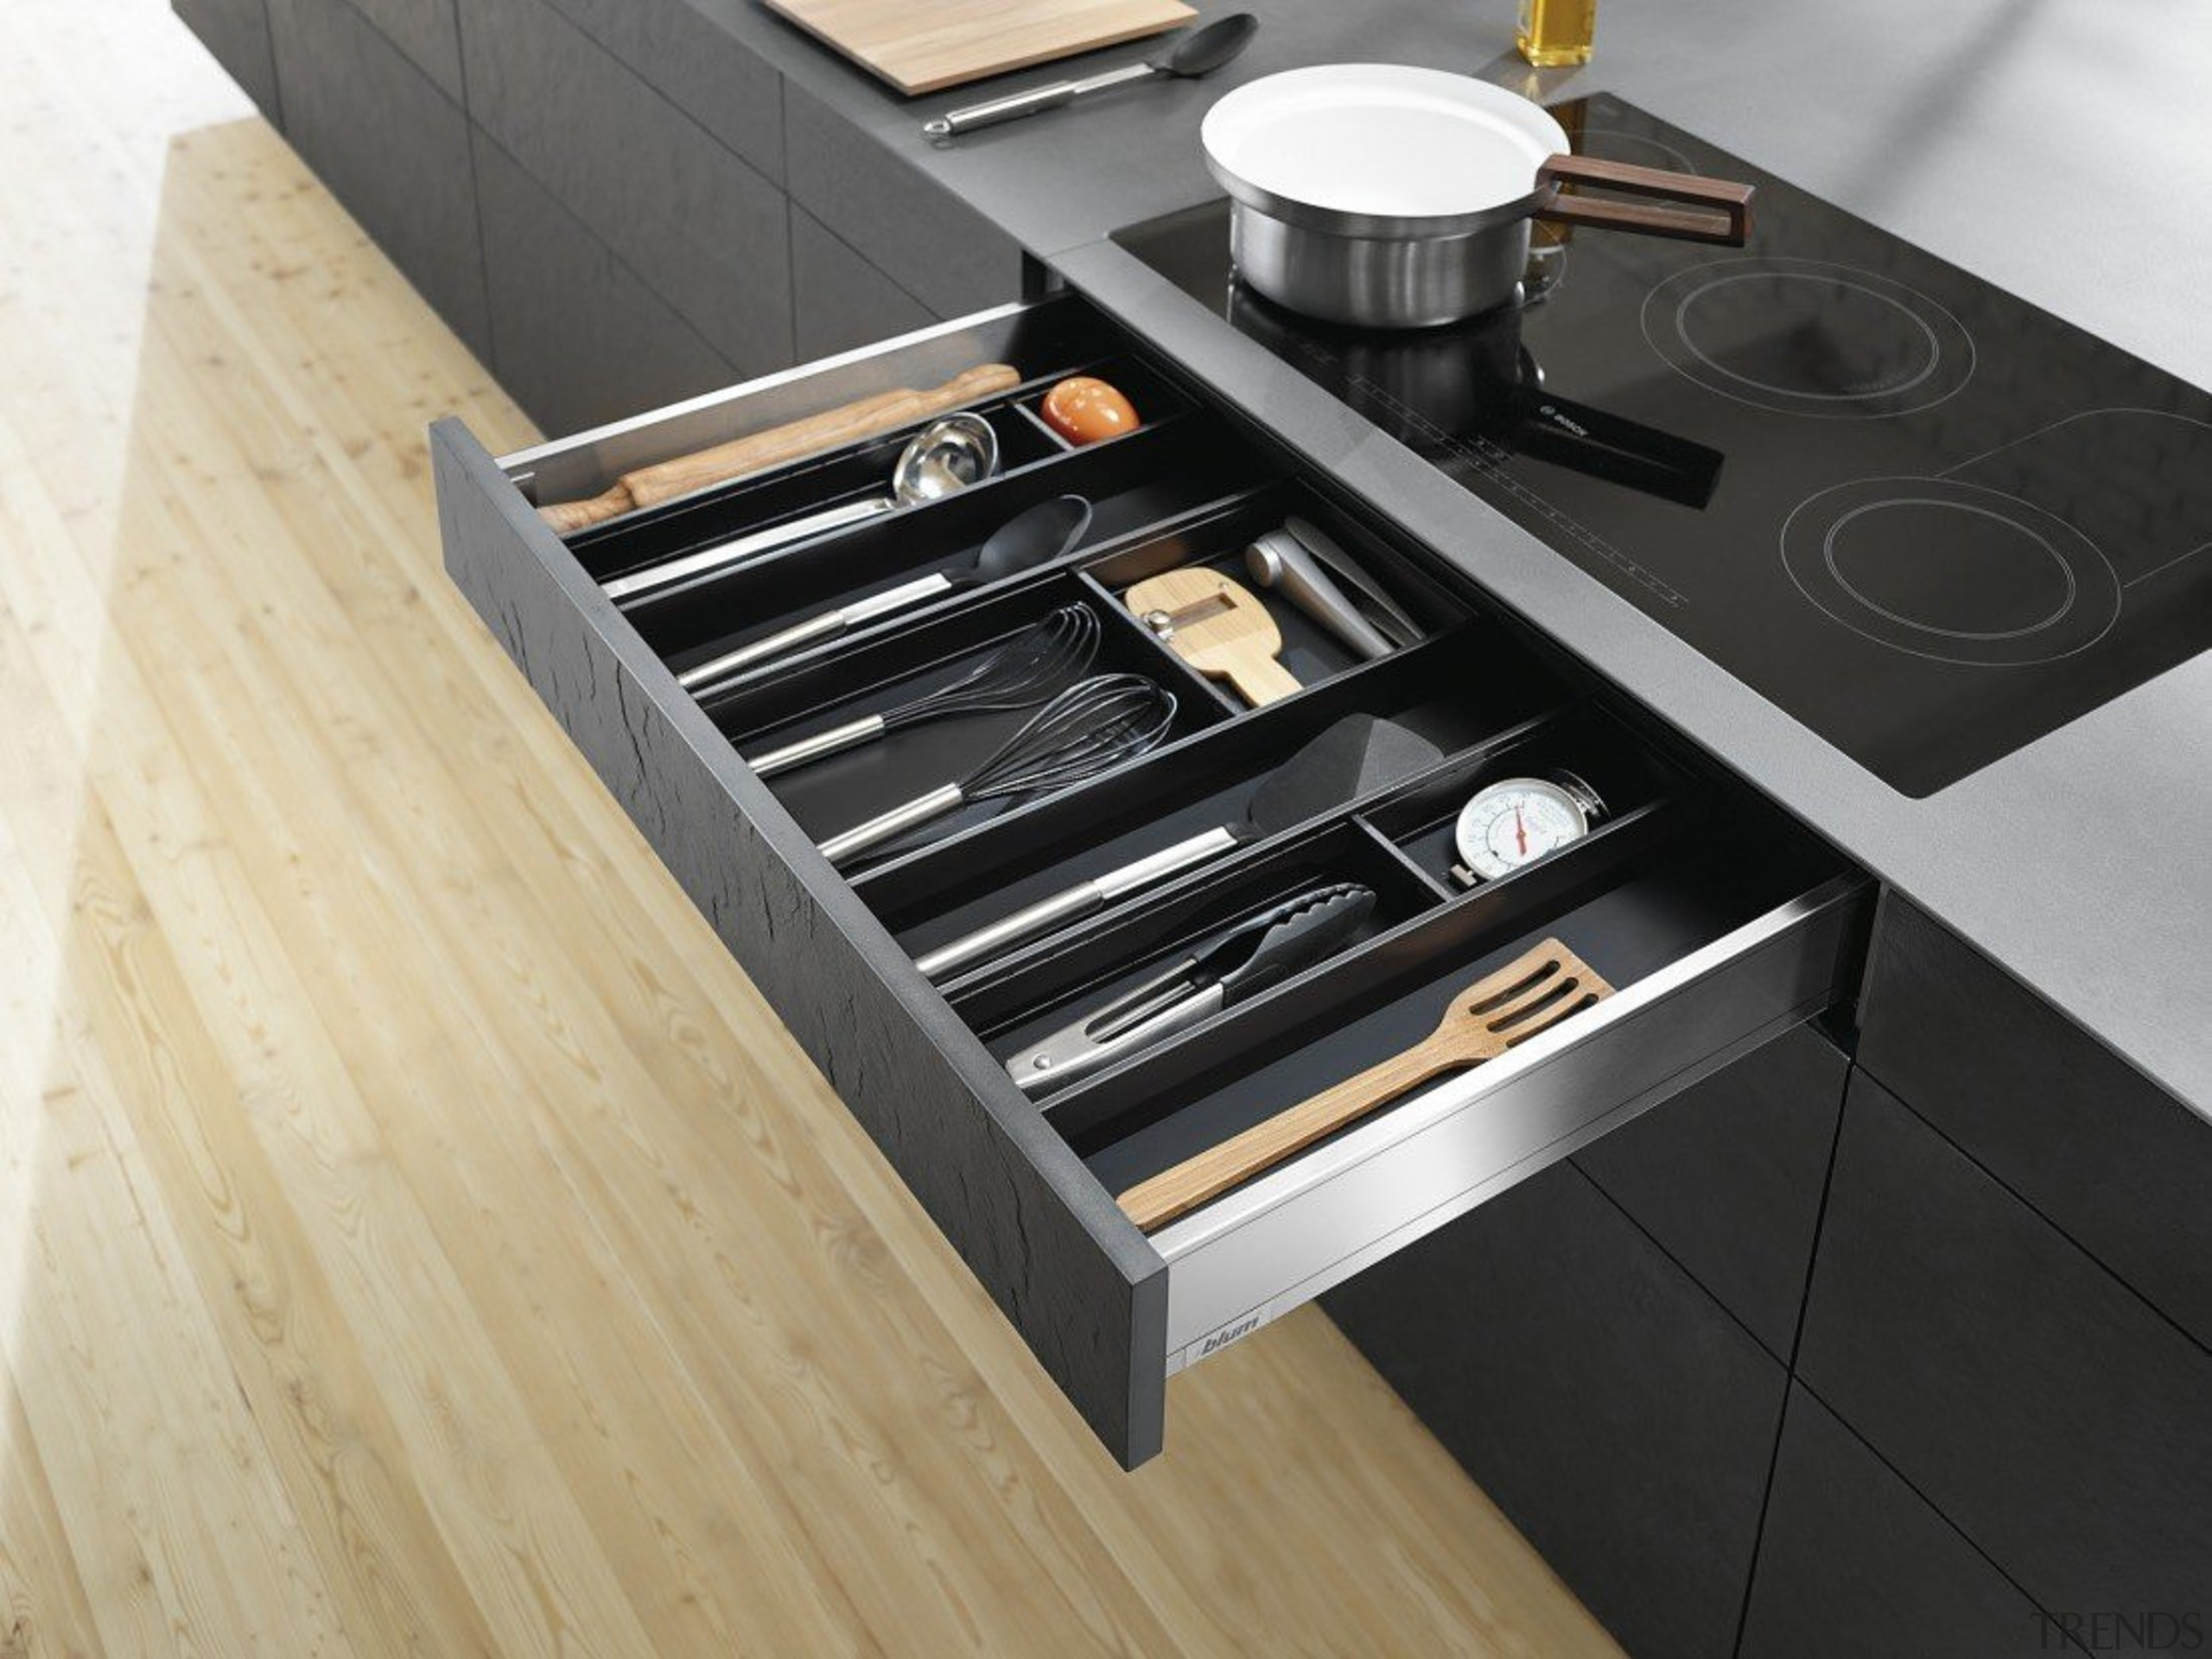 AMBIA-LINE inner dividing system – organization at its countertop, drawer, furniture, kitchen, product design, table, black, orange